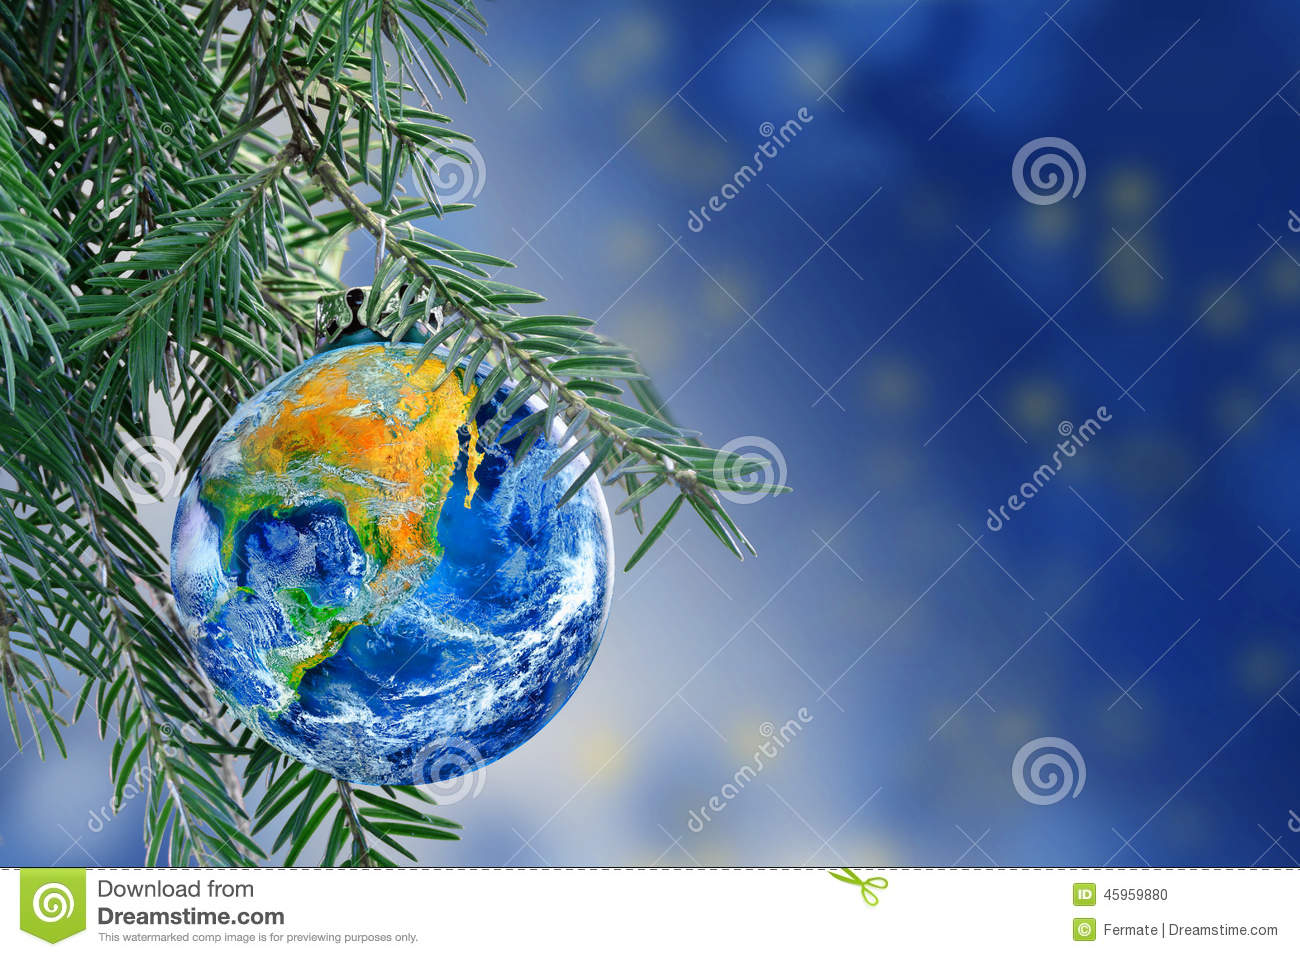 World globe christmas ornaments - Bauble Branch Christmas Copy Earth Fir Globe